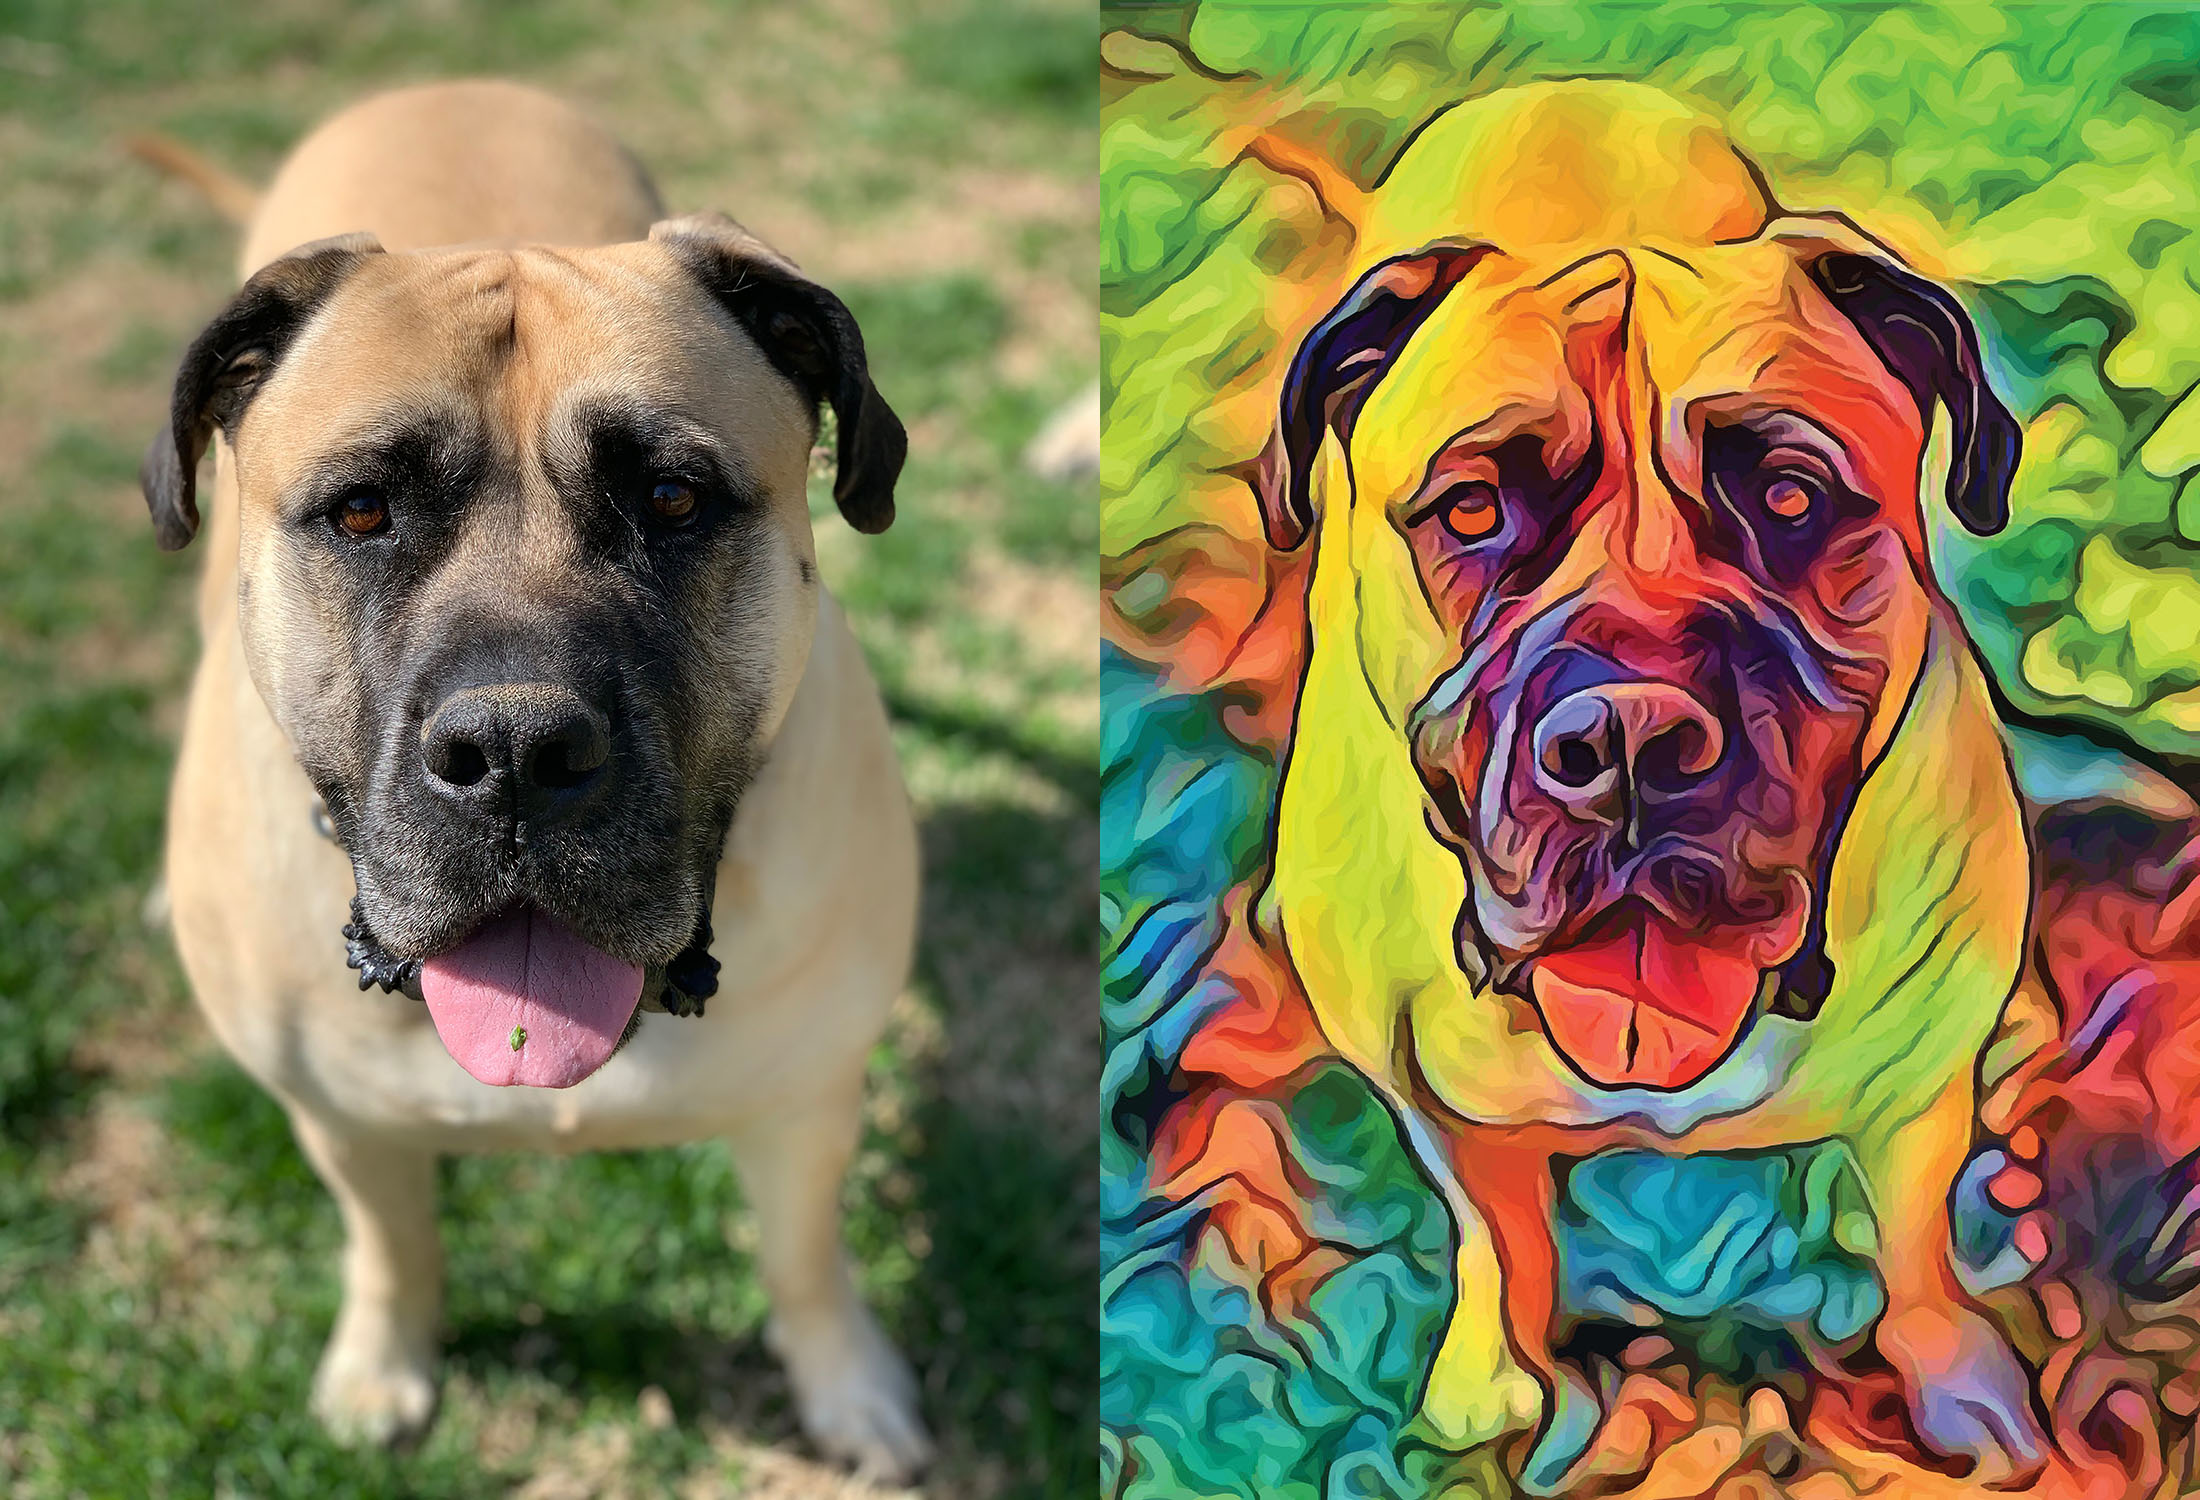 Before and after stylized image of a panting dog